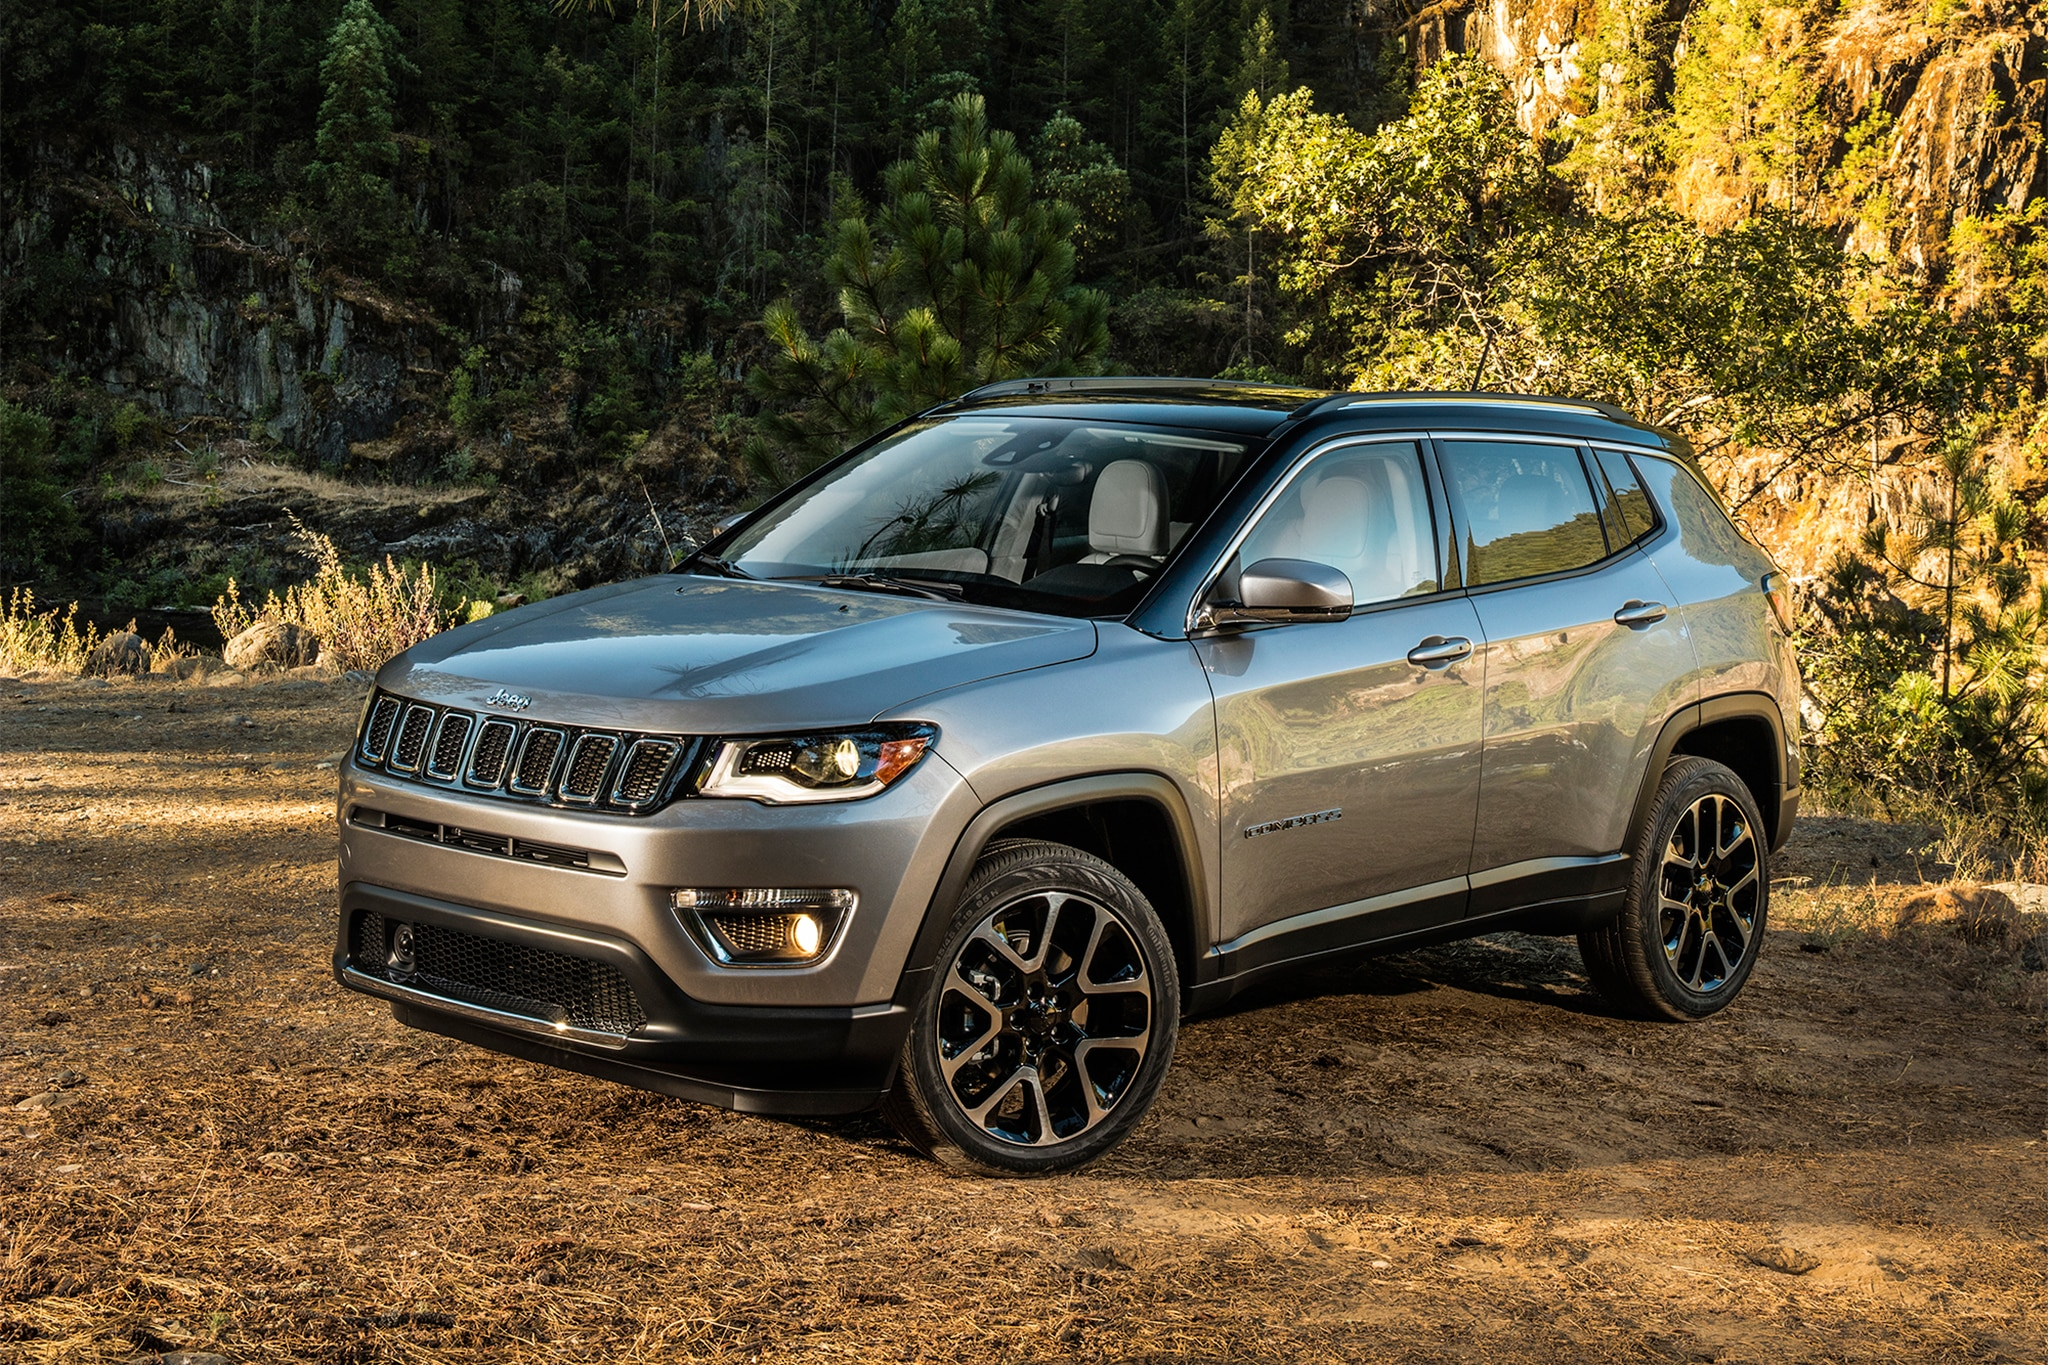 2017 Jeep Cherokee Lifted >> 2017 Jeep Compass First Look | Automobile Magazine